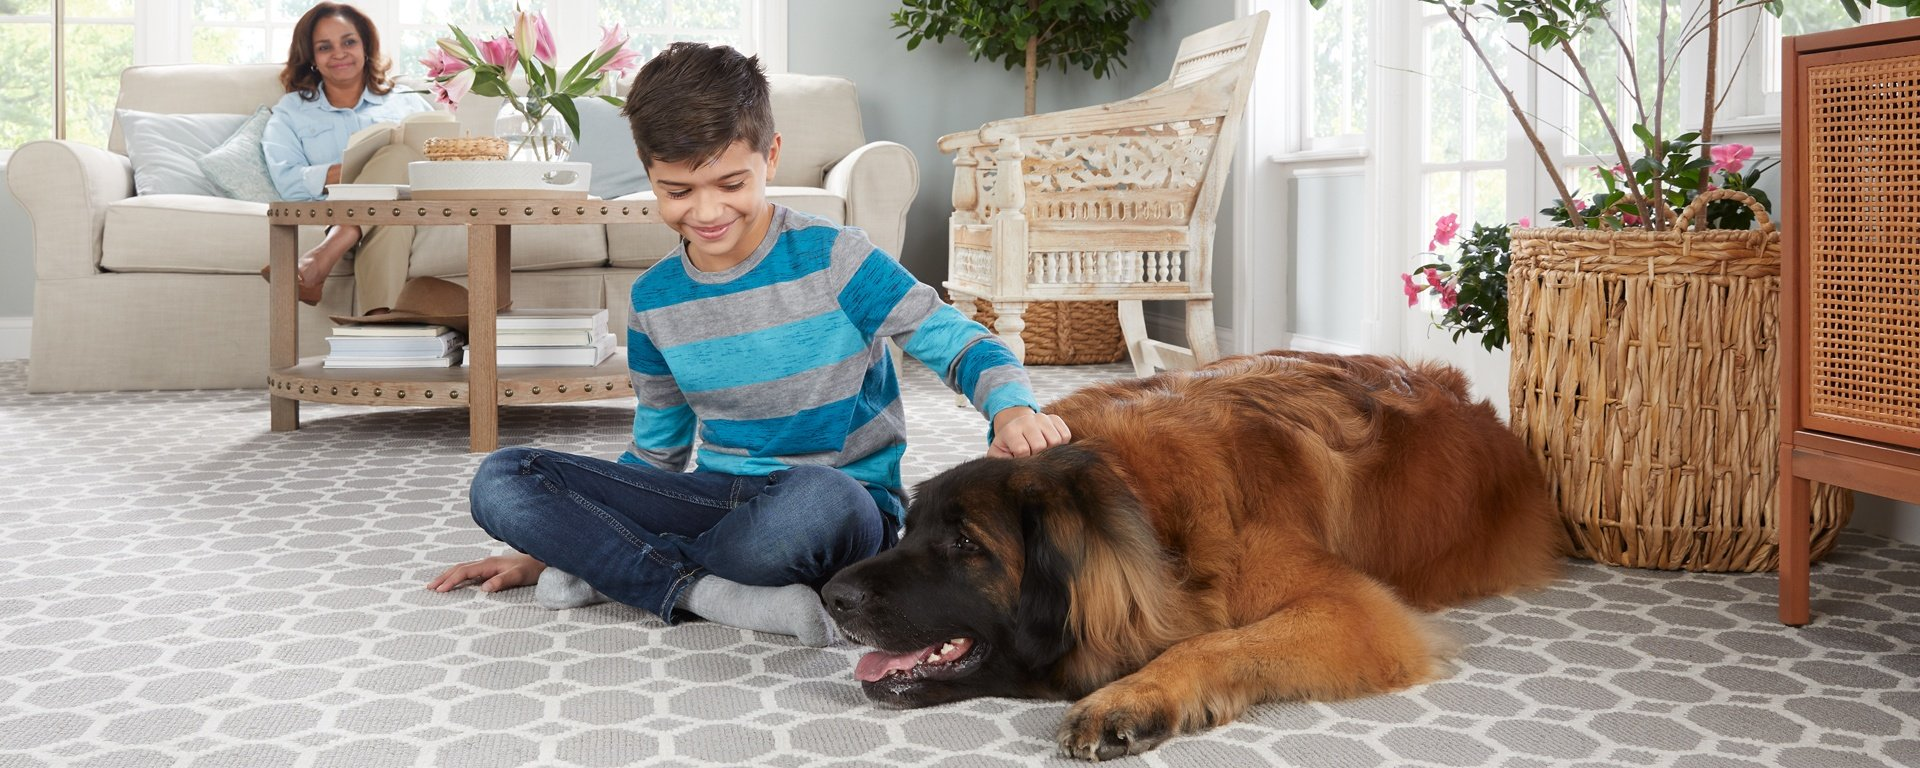 Stainmaster Pet Protect carpet with a boy and his big dog sitting on the floor